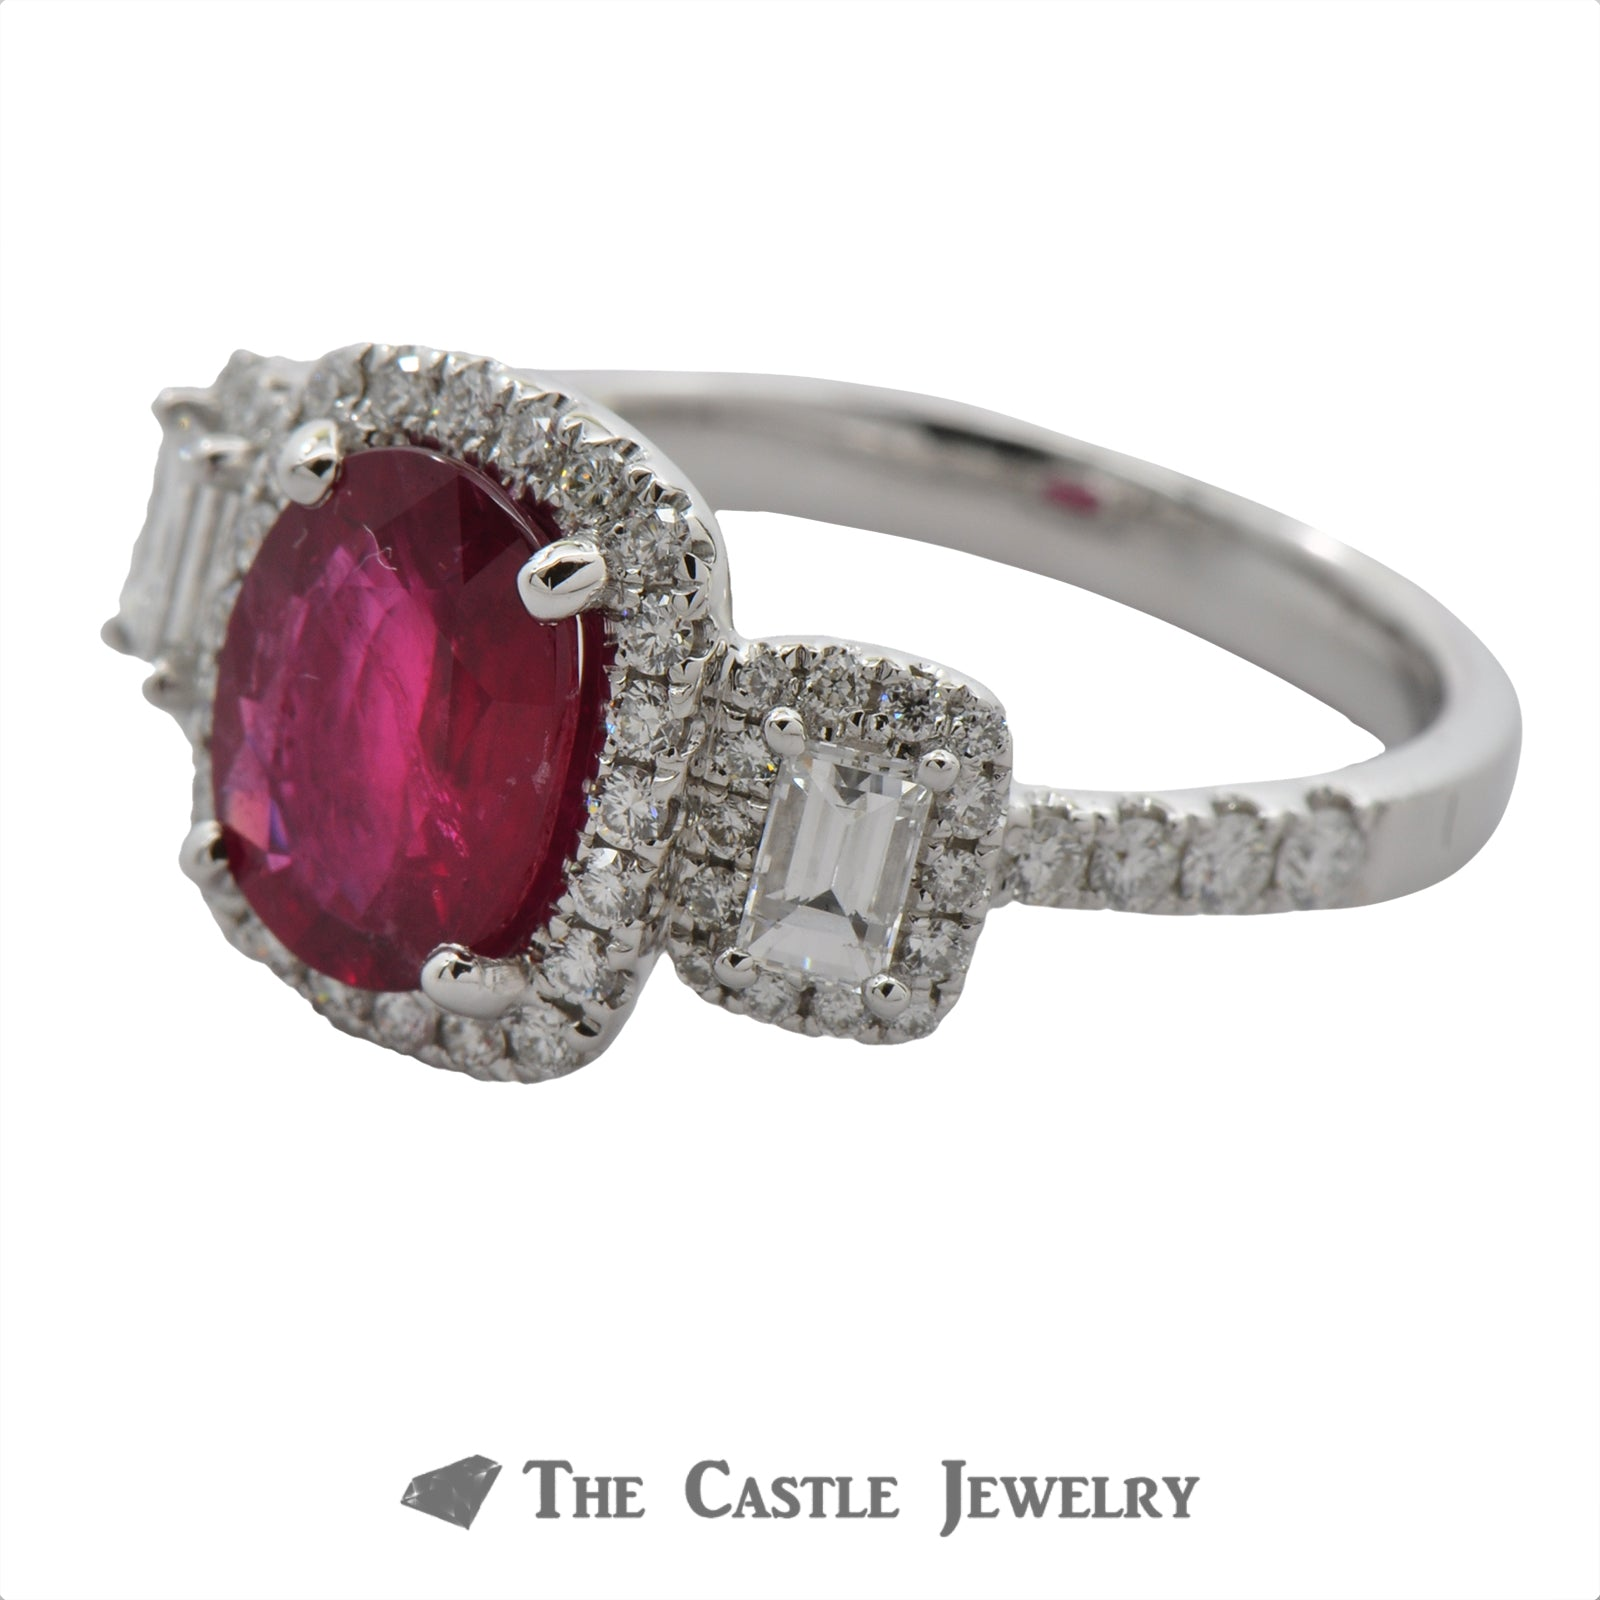 Deep Red Oval Ruby Ring with Emerald Cut Diamond Accents & Bezel-2